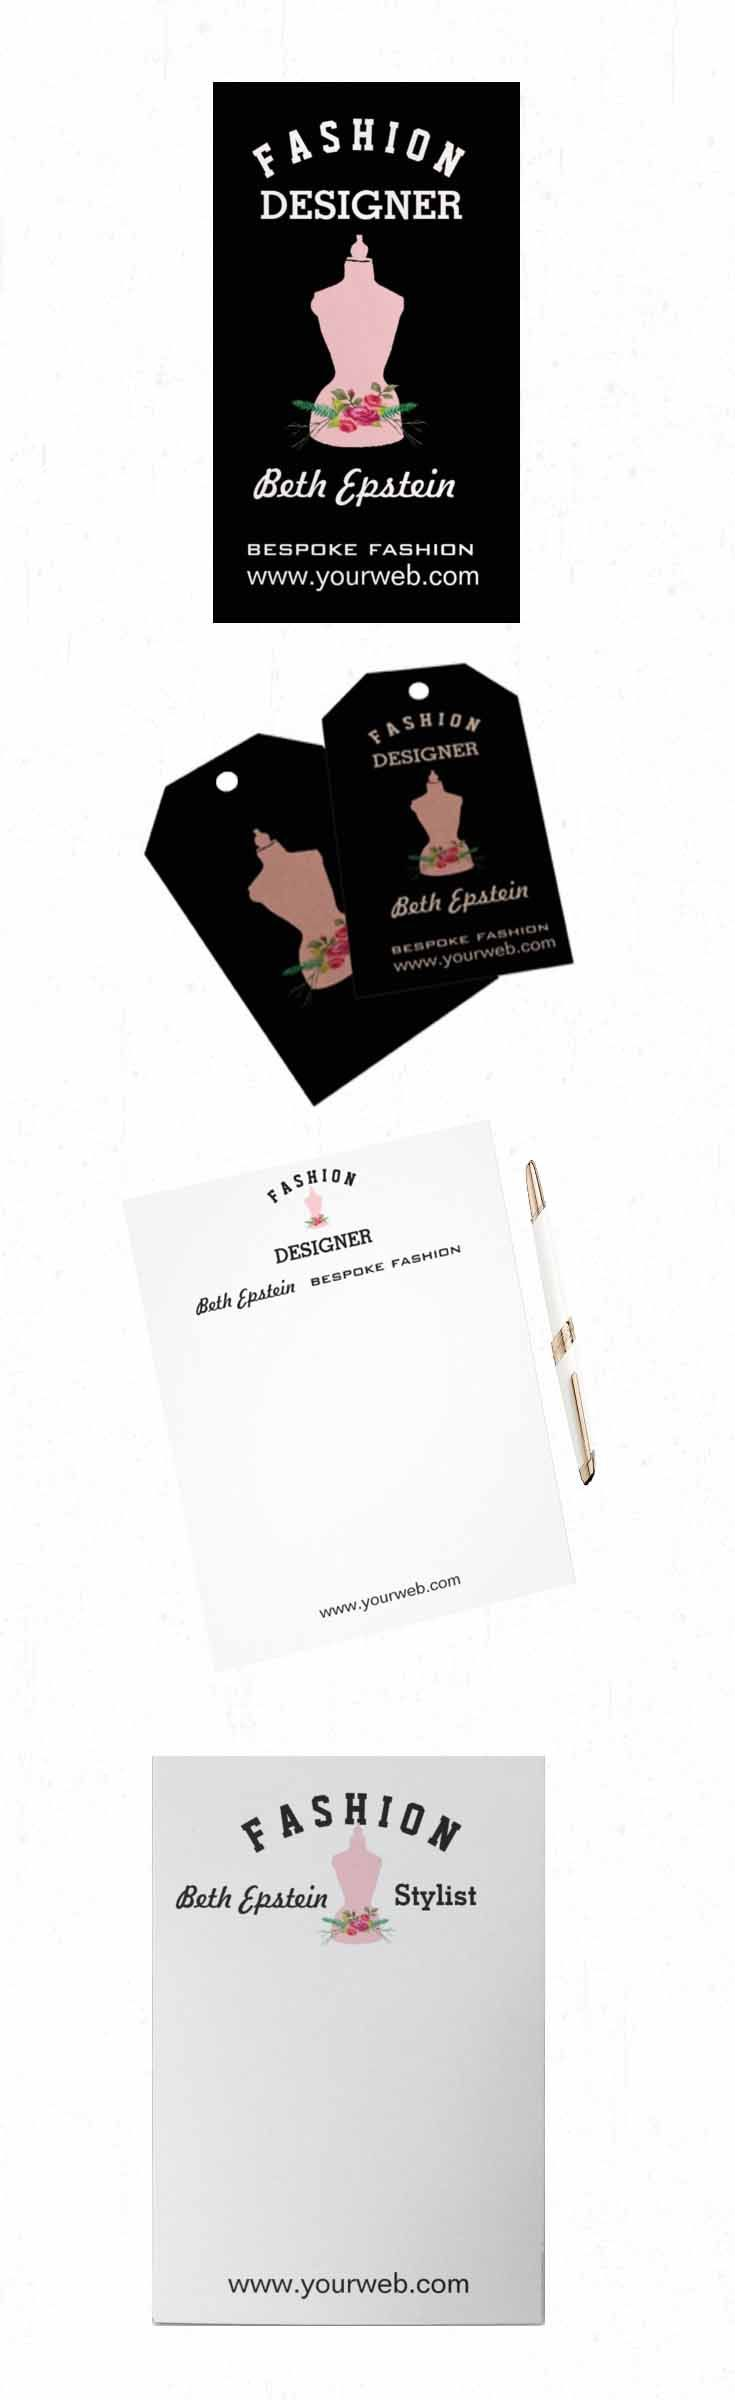 Fashion Pink Vintage Retro Mannequin design illustration on business cards, letterheads, note pads and other business marketing office supplies. Great for fashion designers, bespoke tailoring, seamstress, fashion stylists and more.